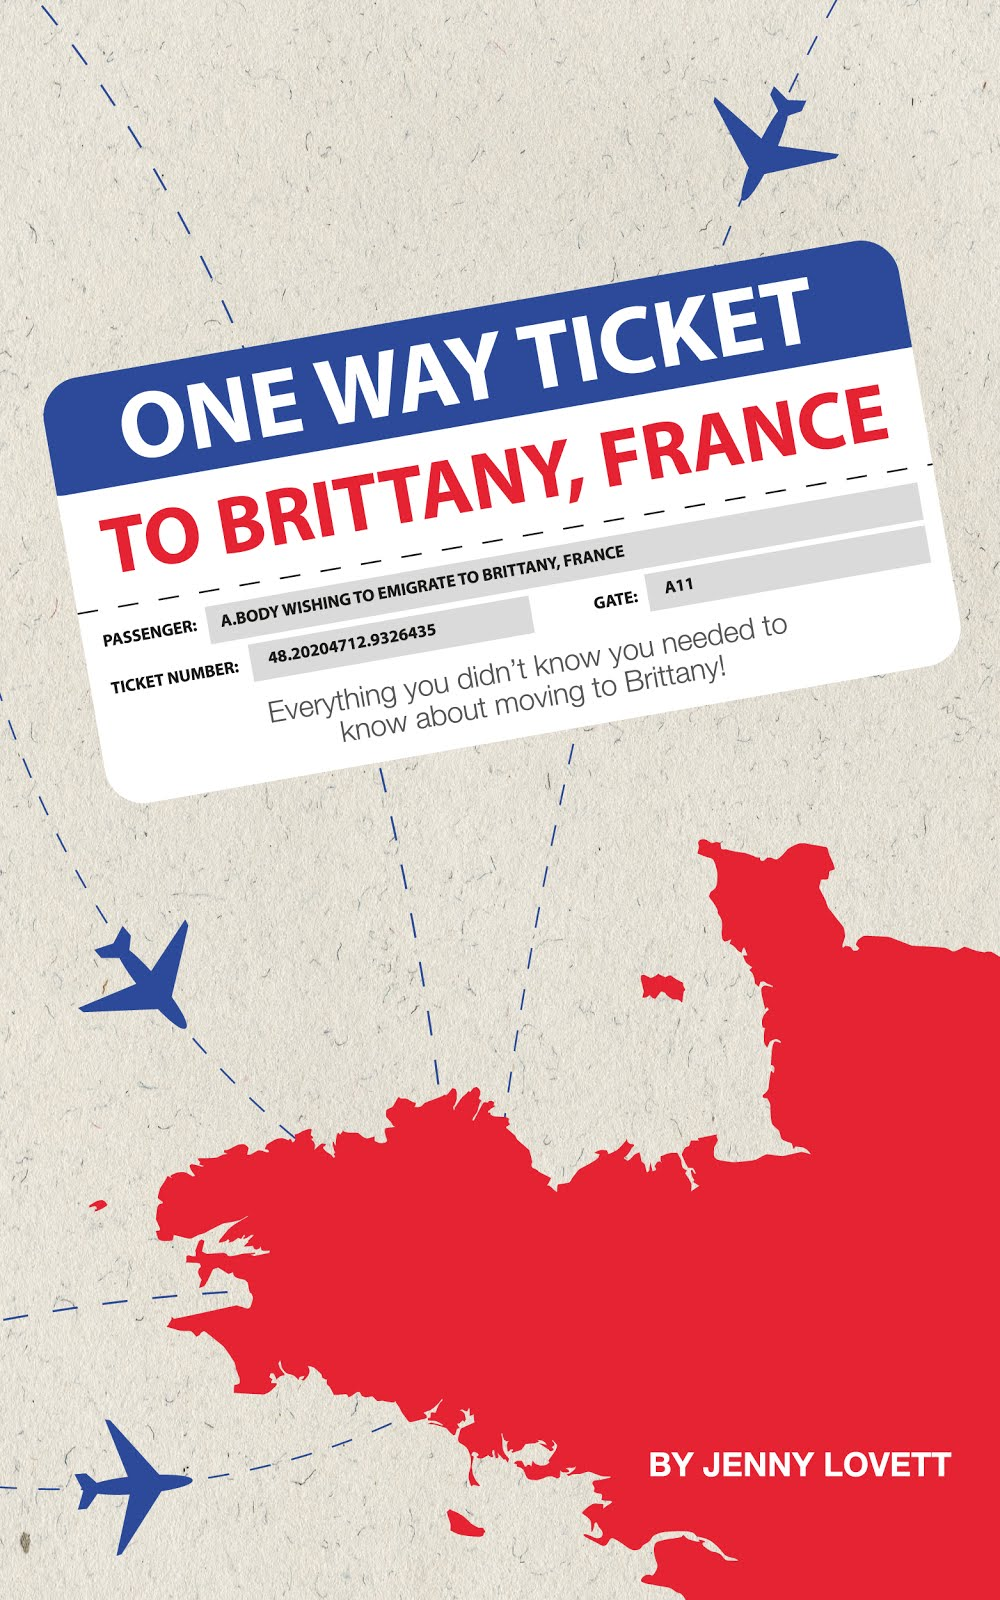 Our first book